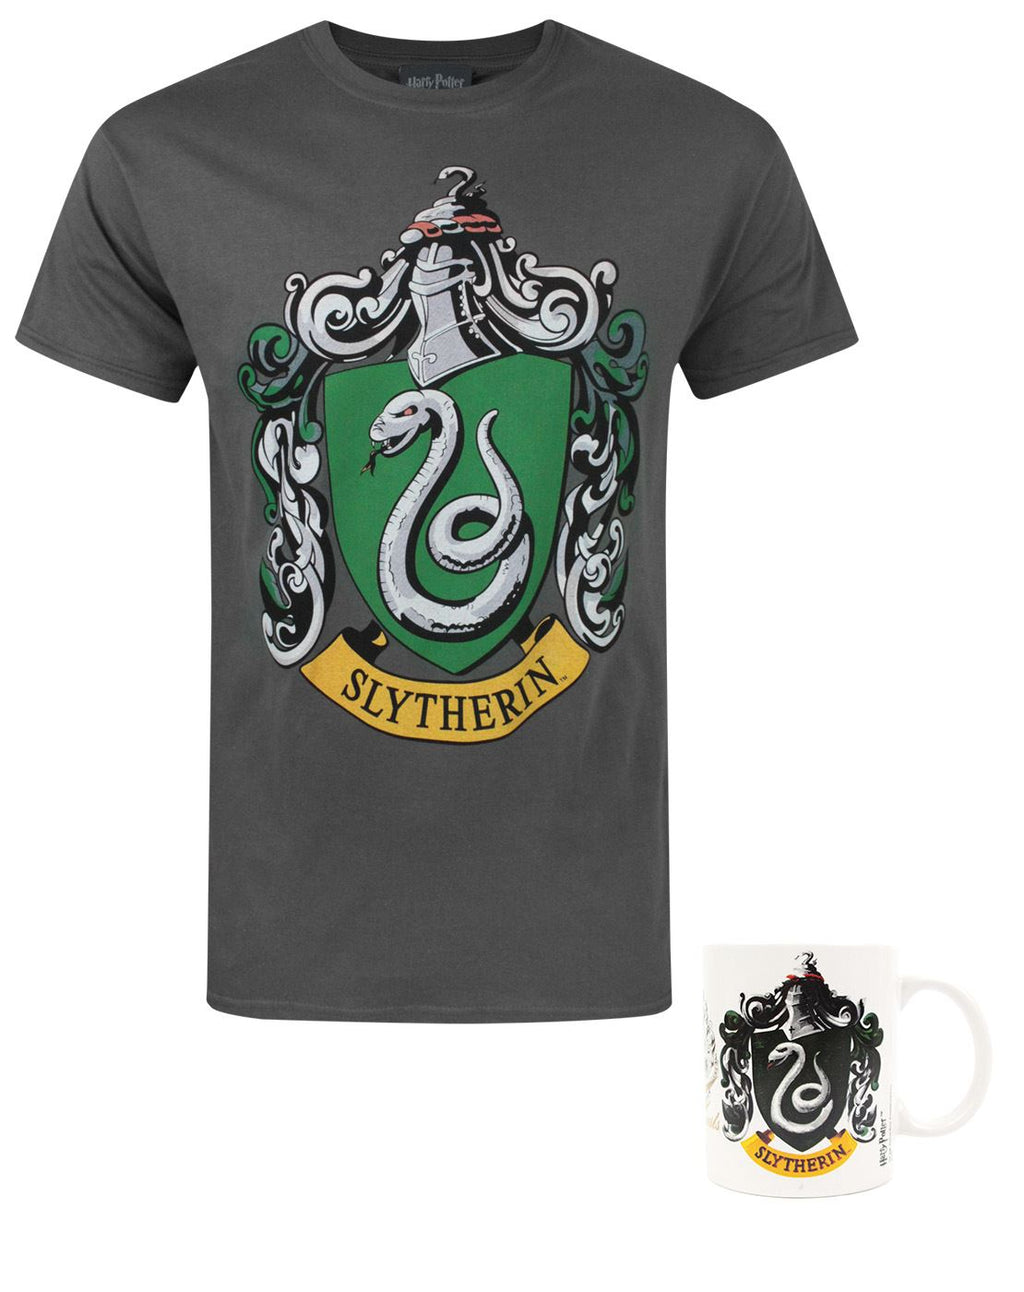 Harry Potter Slytherin Crest Men's T-Shirt and Mug Gift Set Bundle